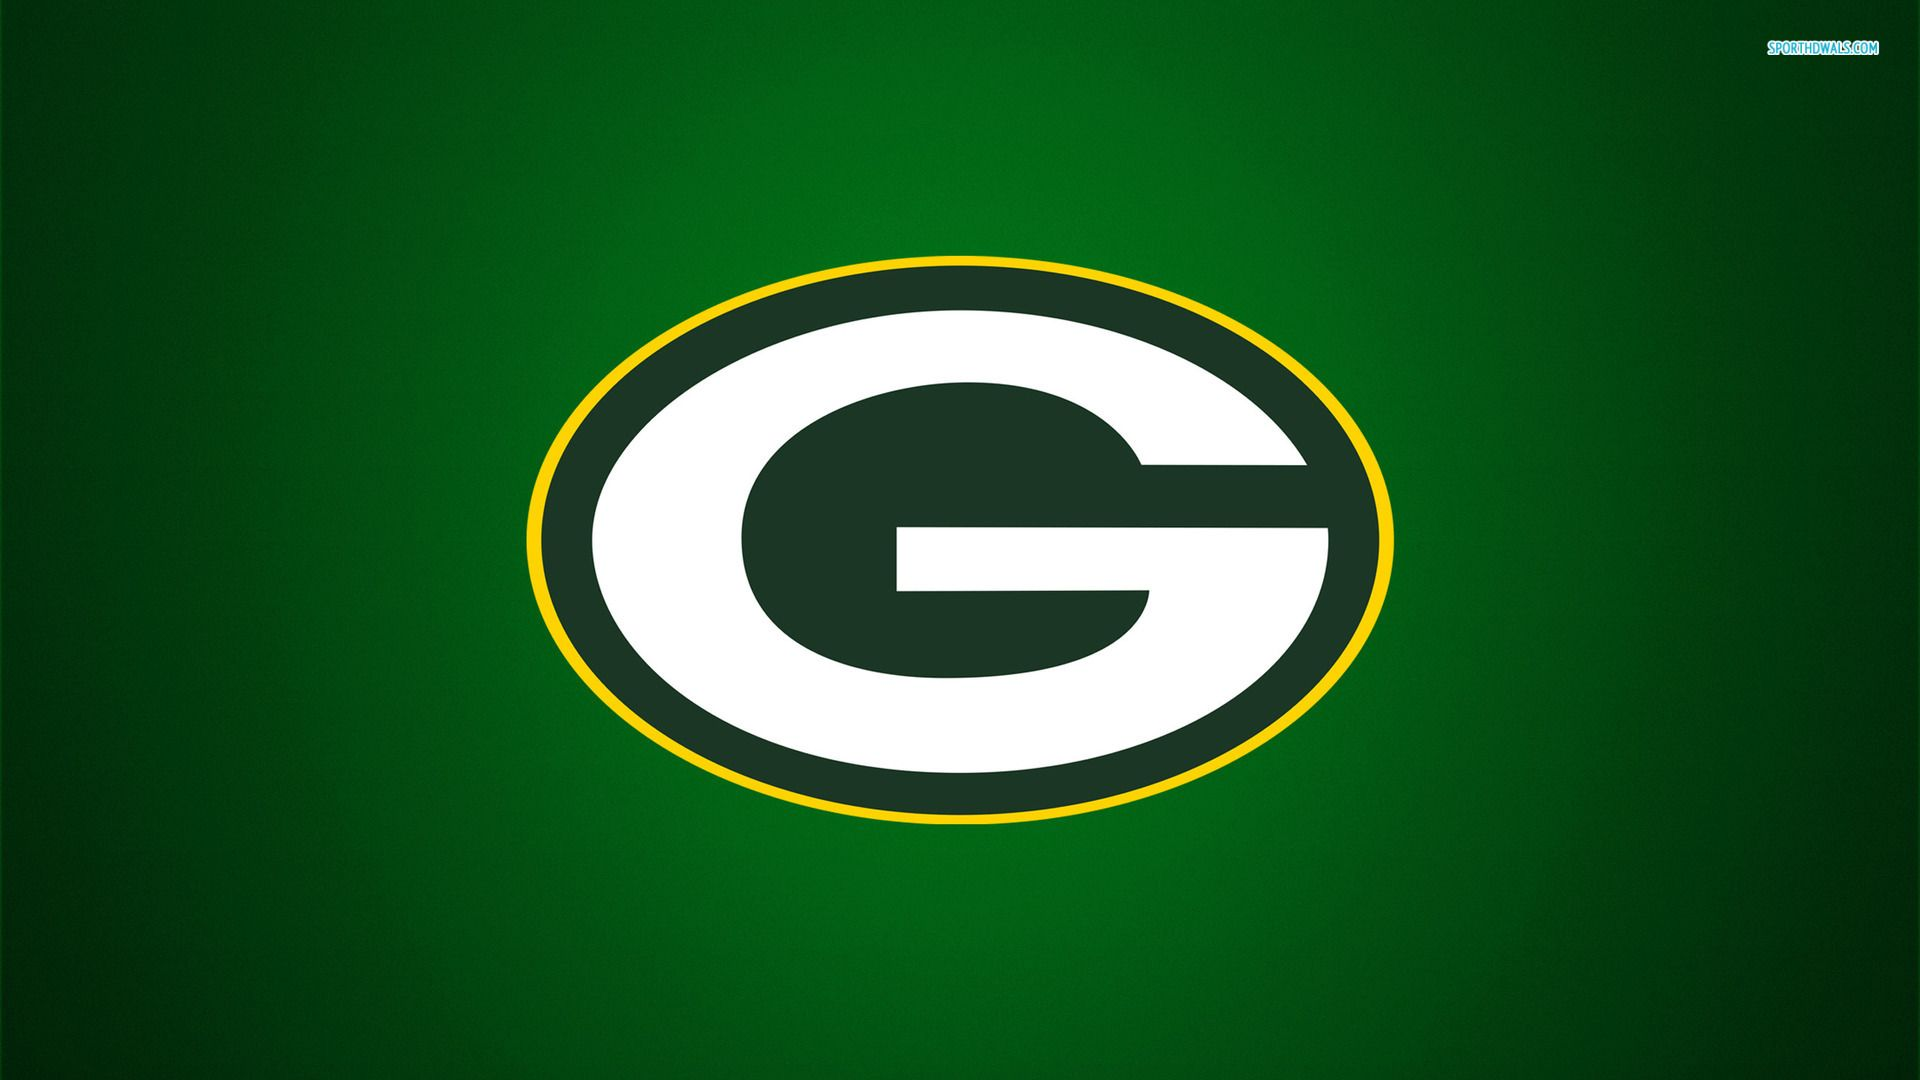 Green Bay Packers Green Bay Packers wallpaper 1920x1080